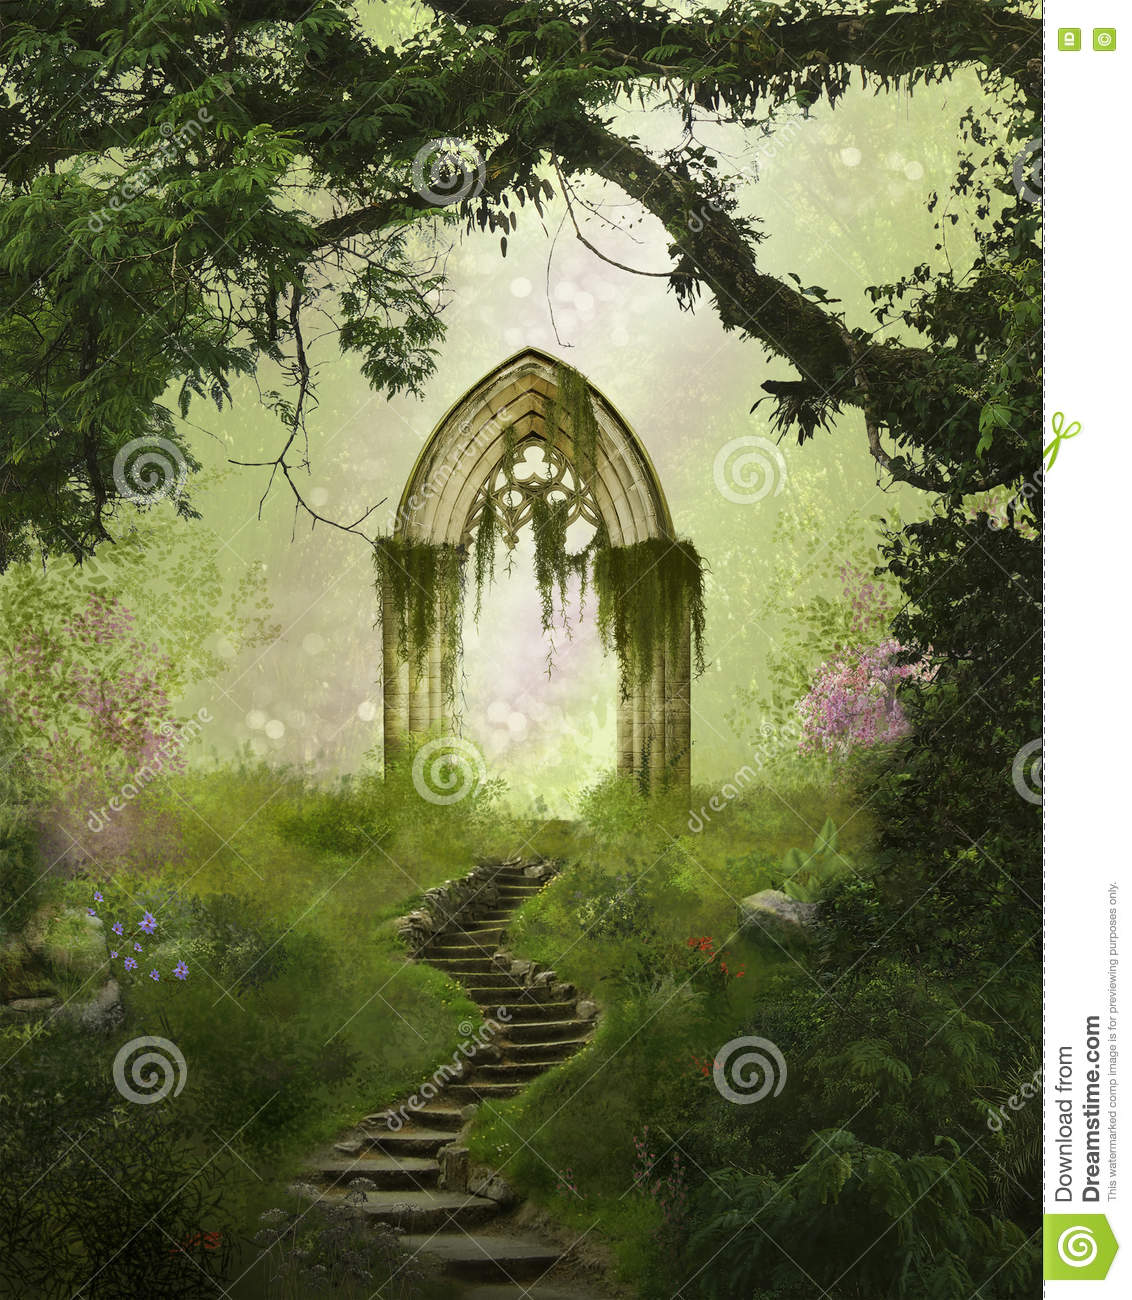 Fantasy gate in the forest